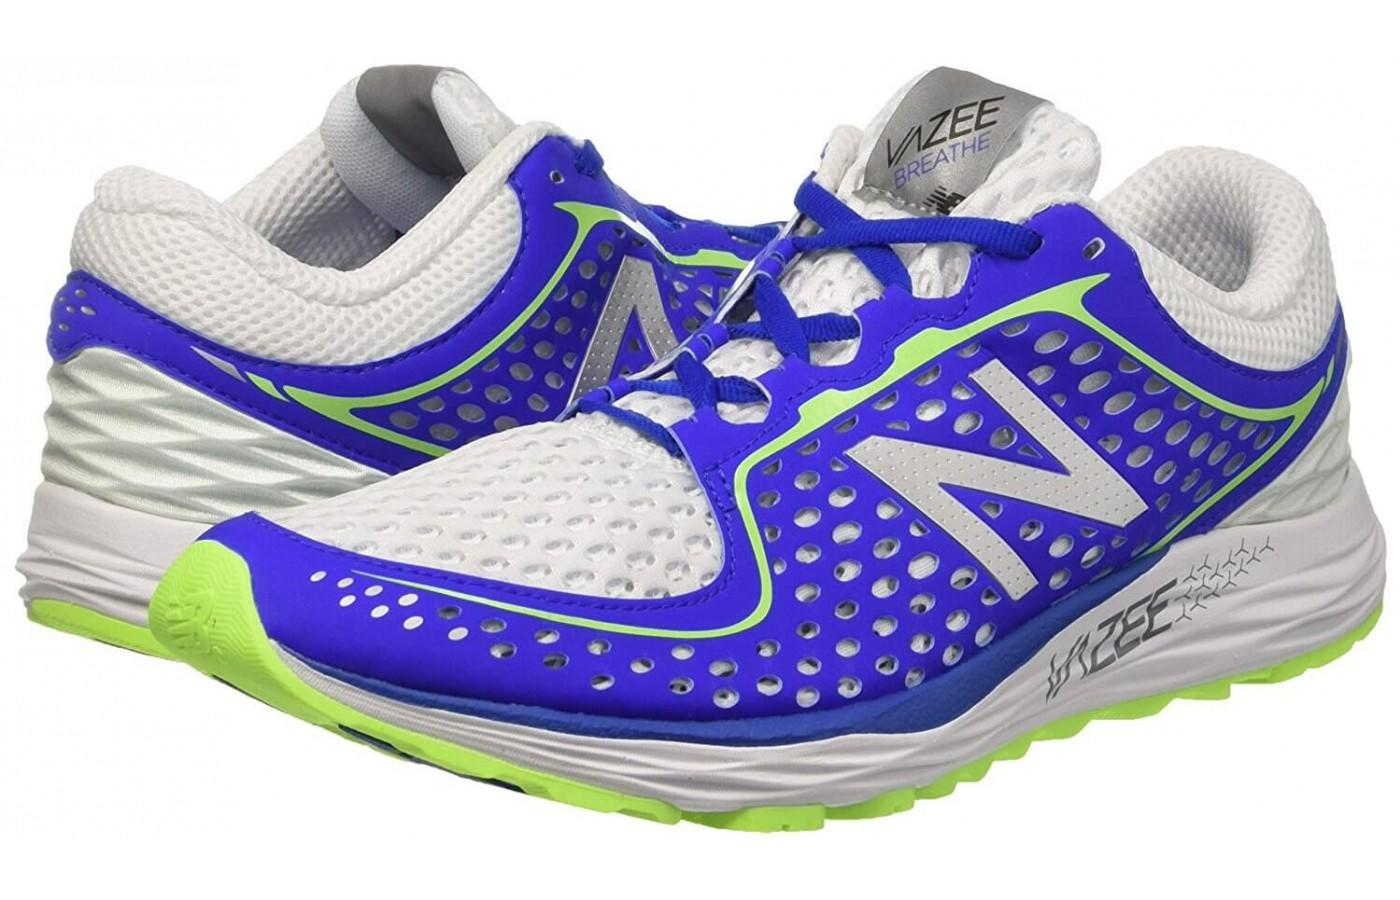 The New Balance Vazee Breathe reviewed and compared.